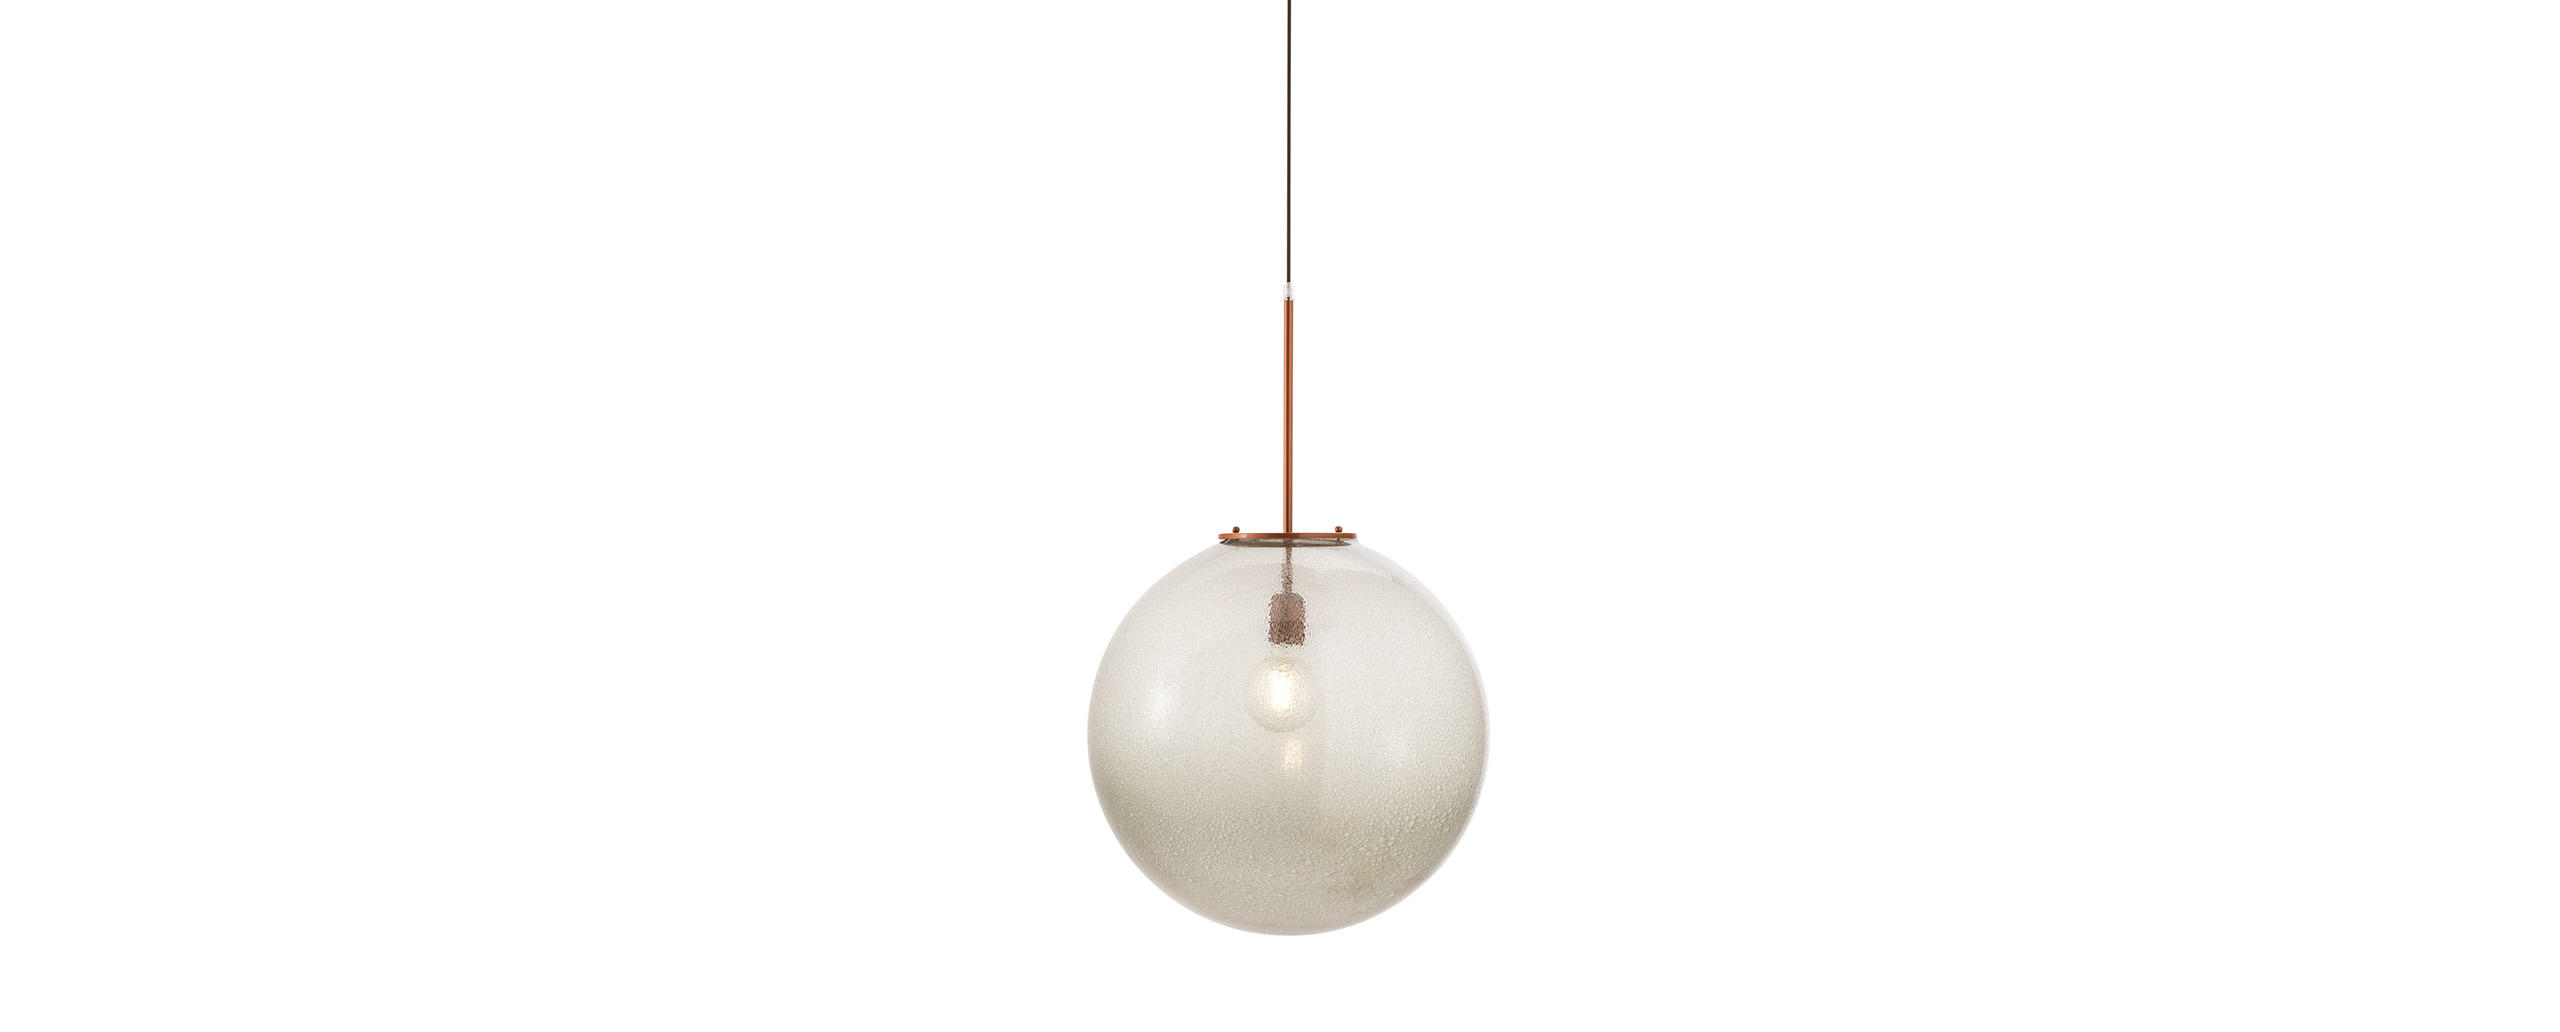 cassina_lamps_collection_bollicosa灯具